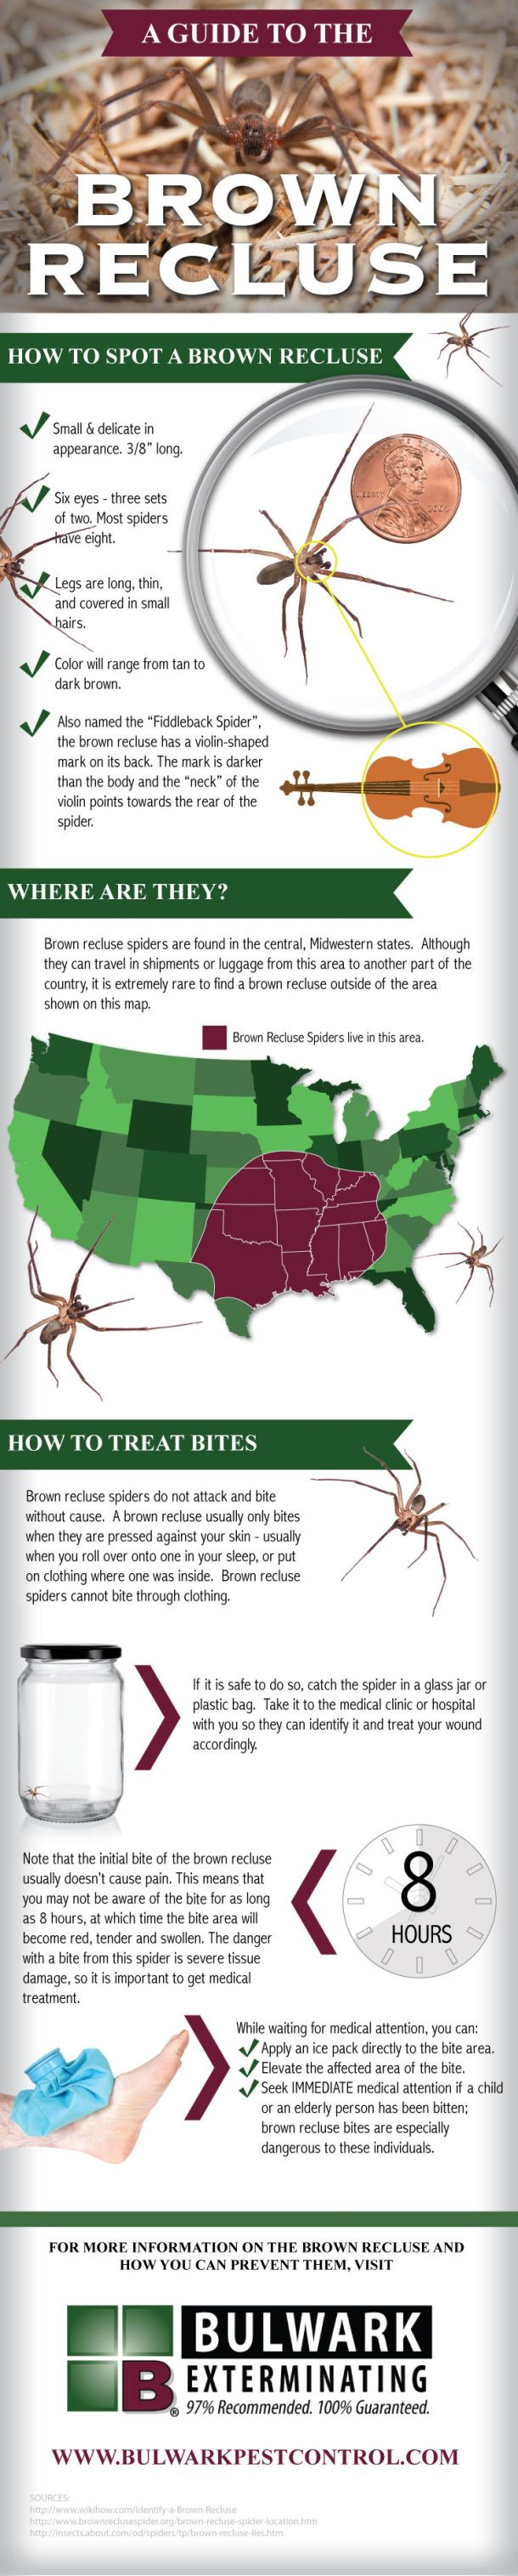 YSK How to spot a Brown Recluse Spider and which states have them